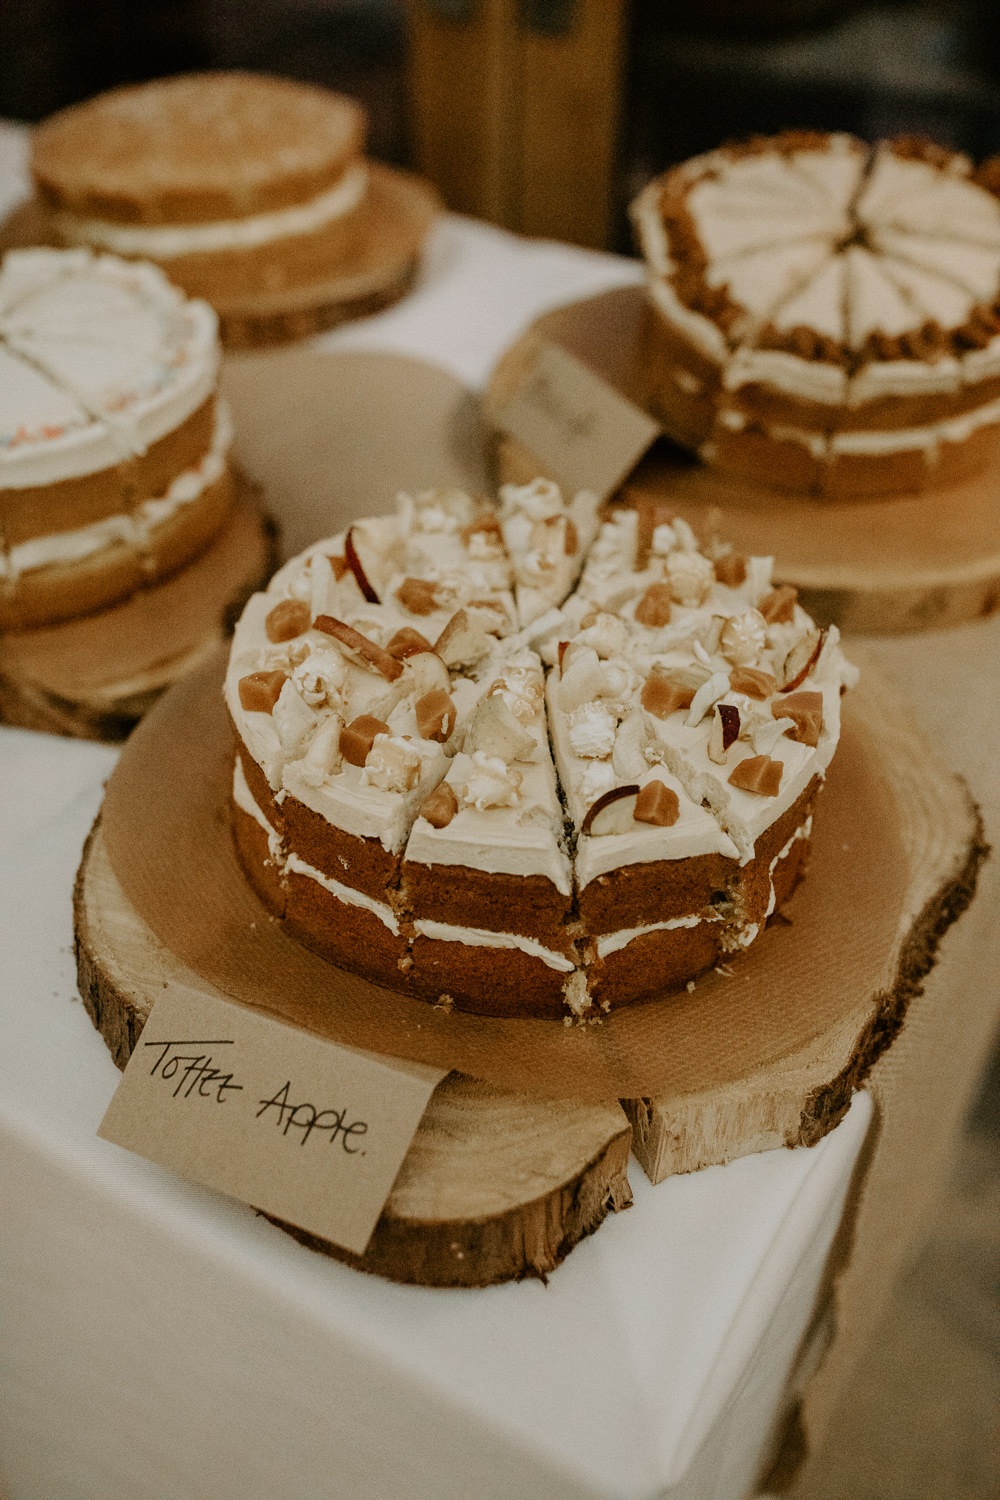 Cake Dessert Table Barn Upcote Wedding Siobhan Beales Photography